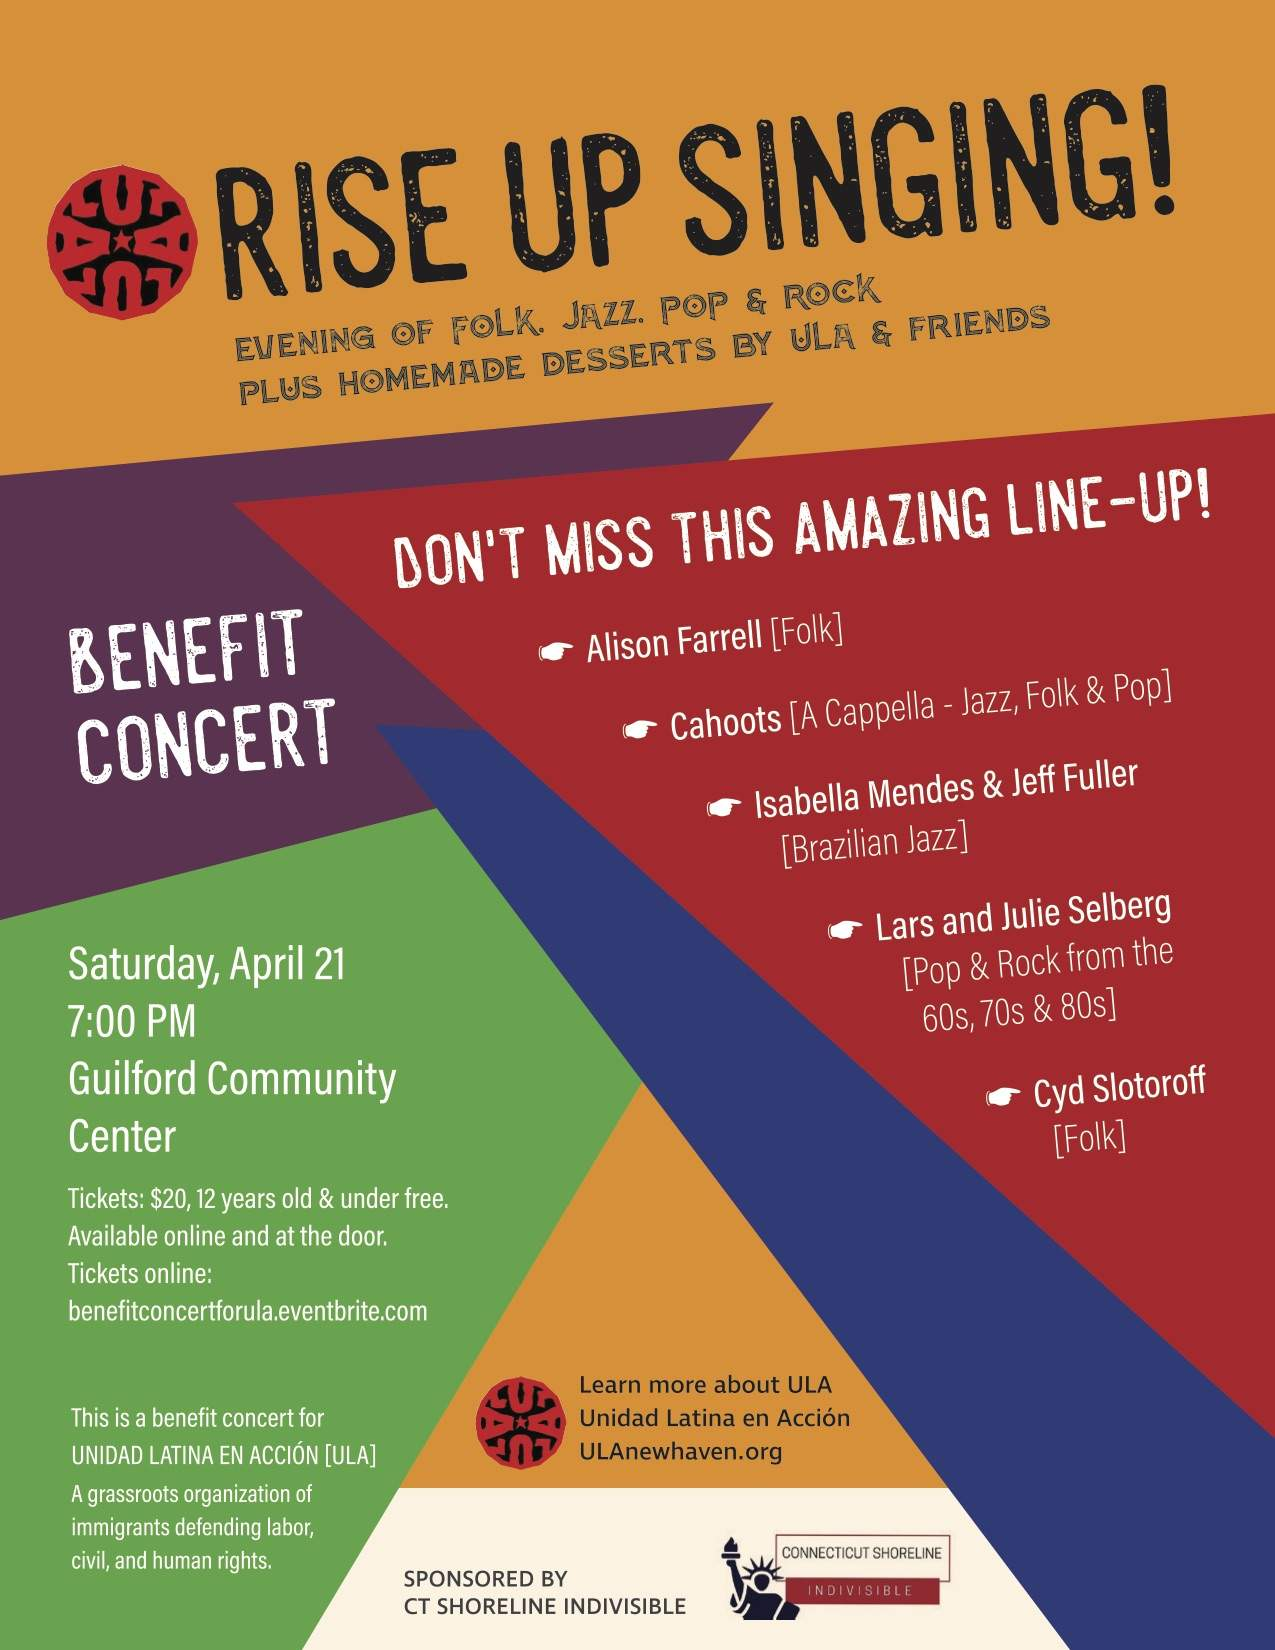 Rise Up Singing! An evening of Folk, Jazz, Pop and Rock